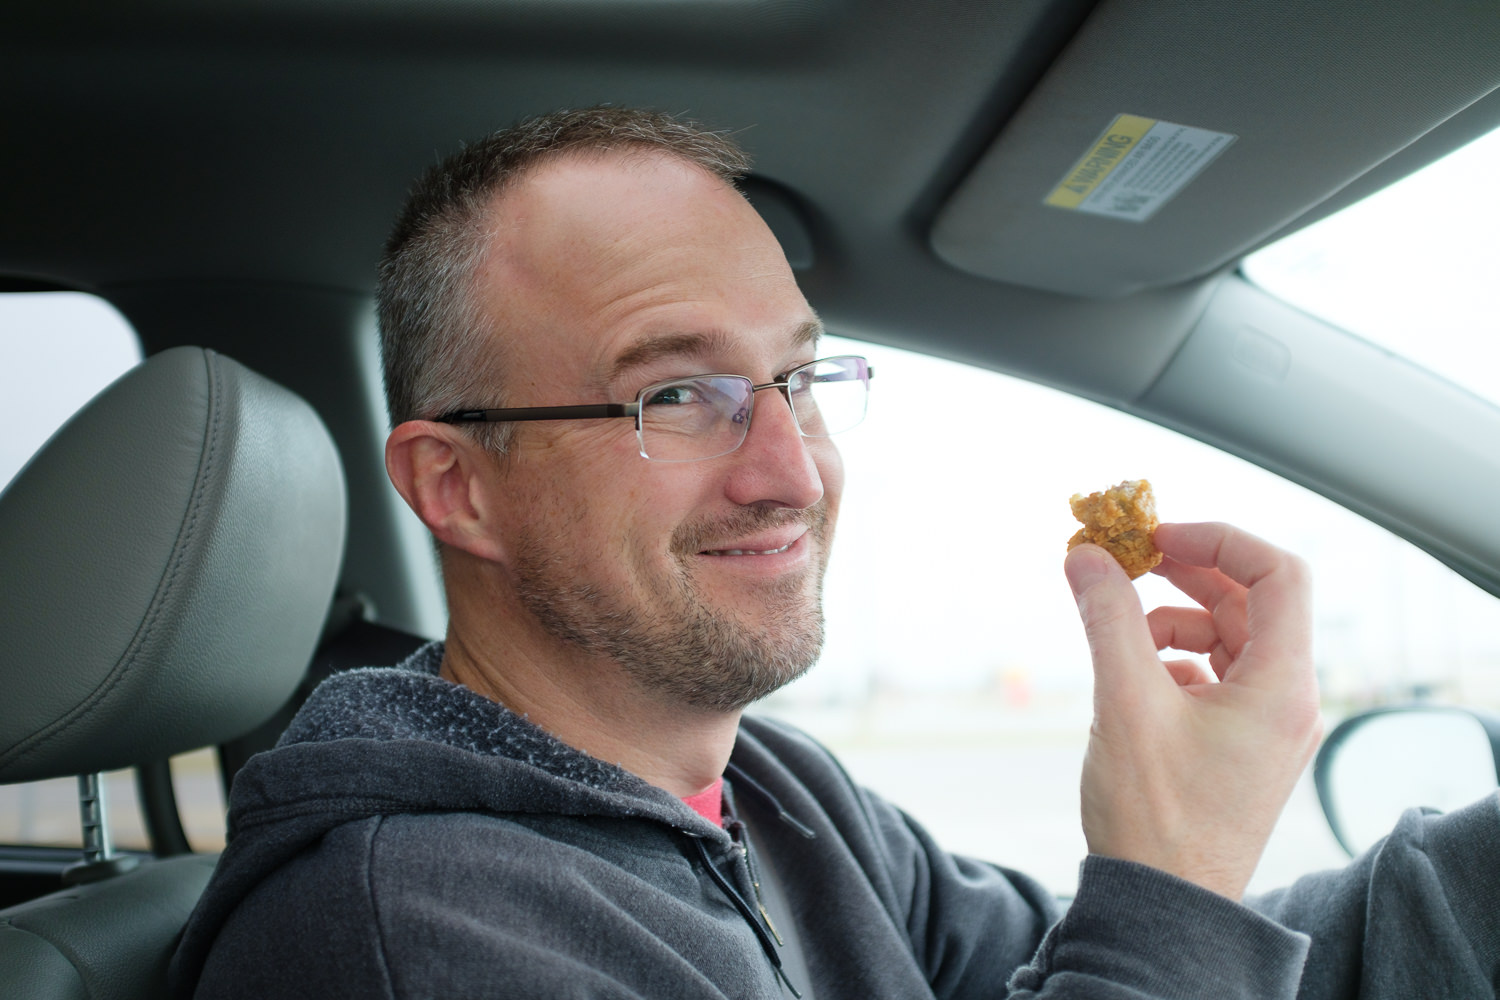 X100F eating gizzards in the car